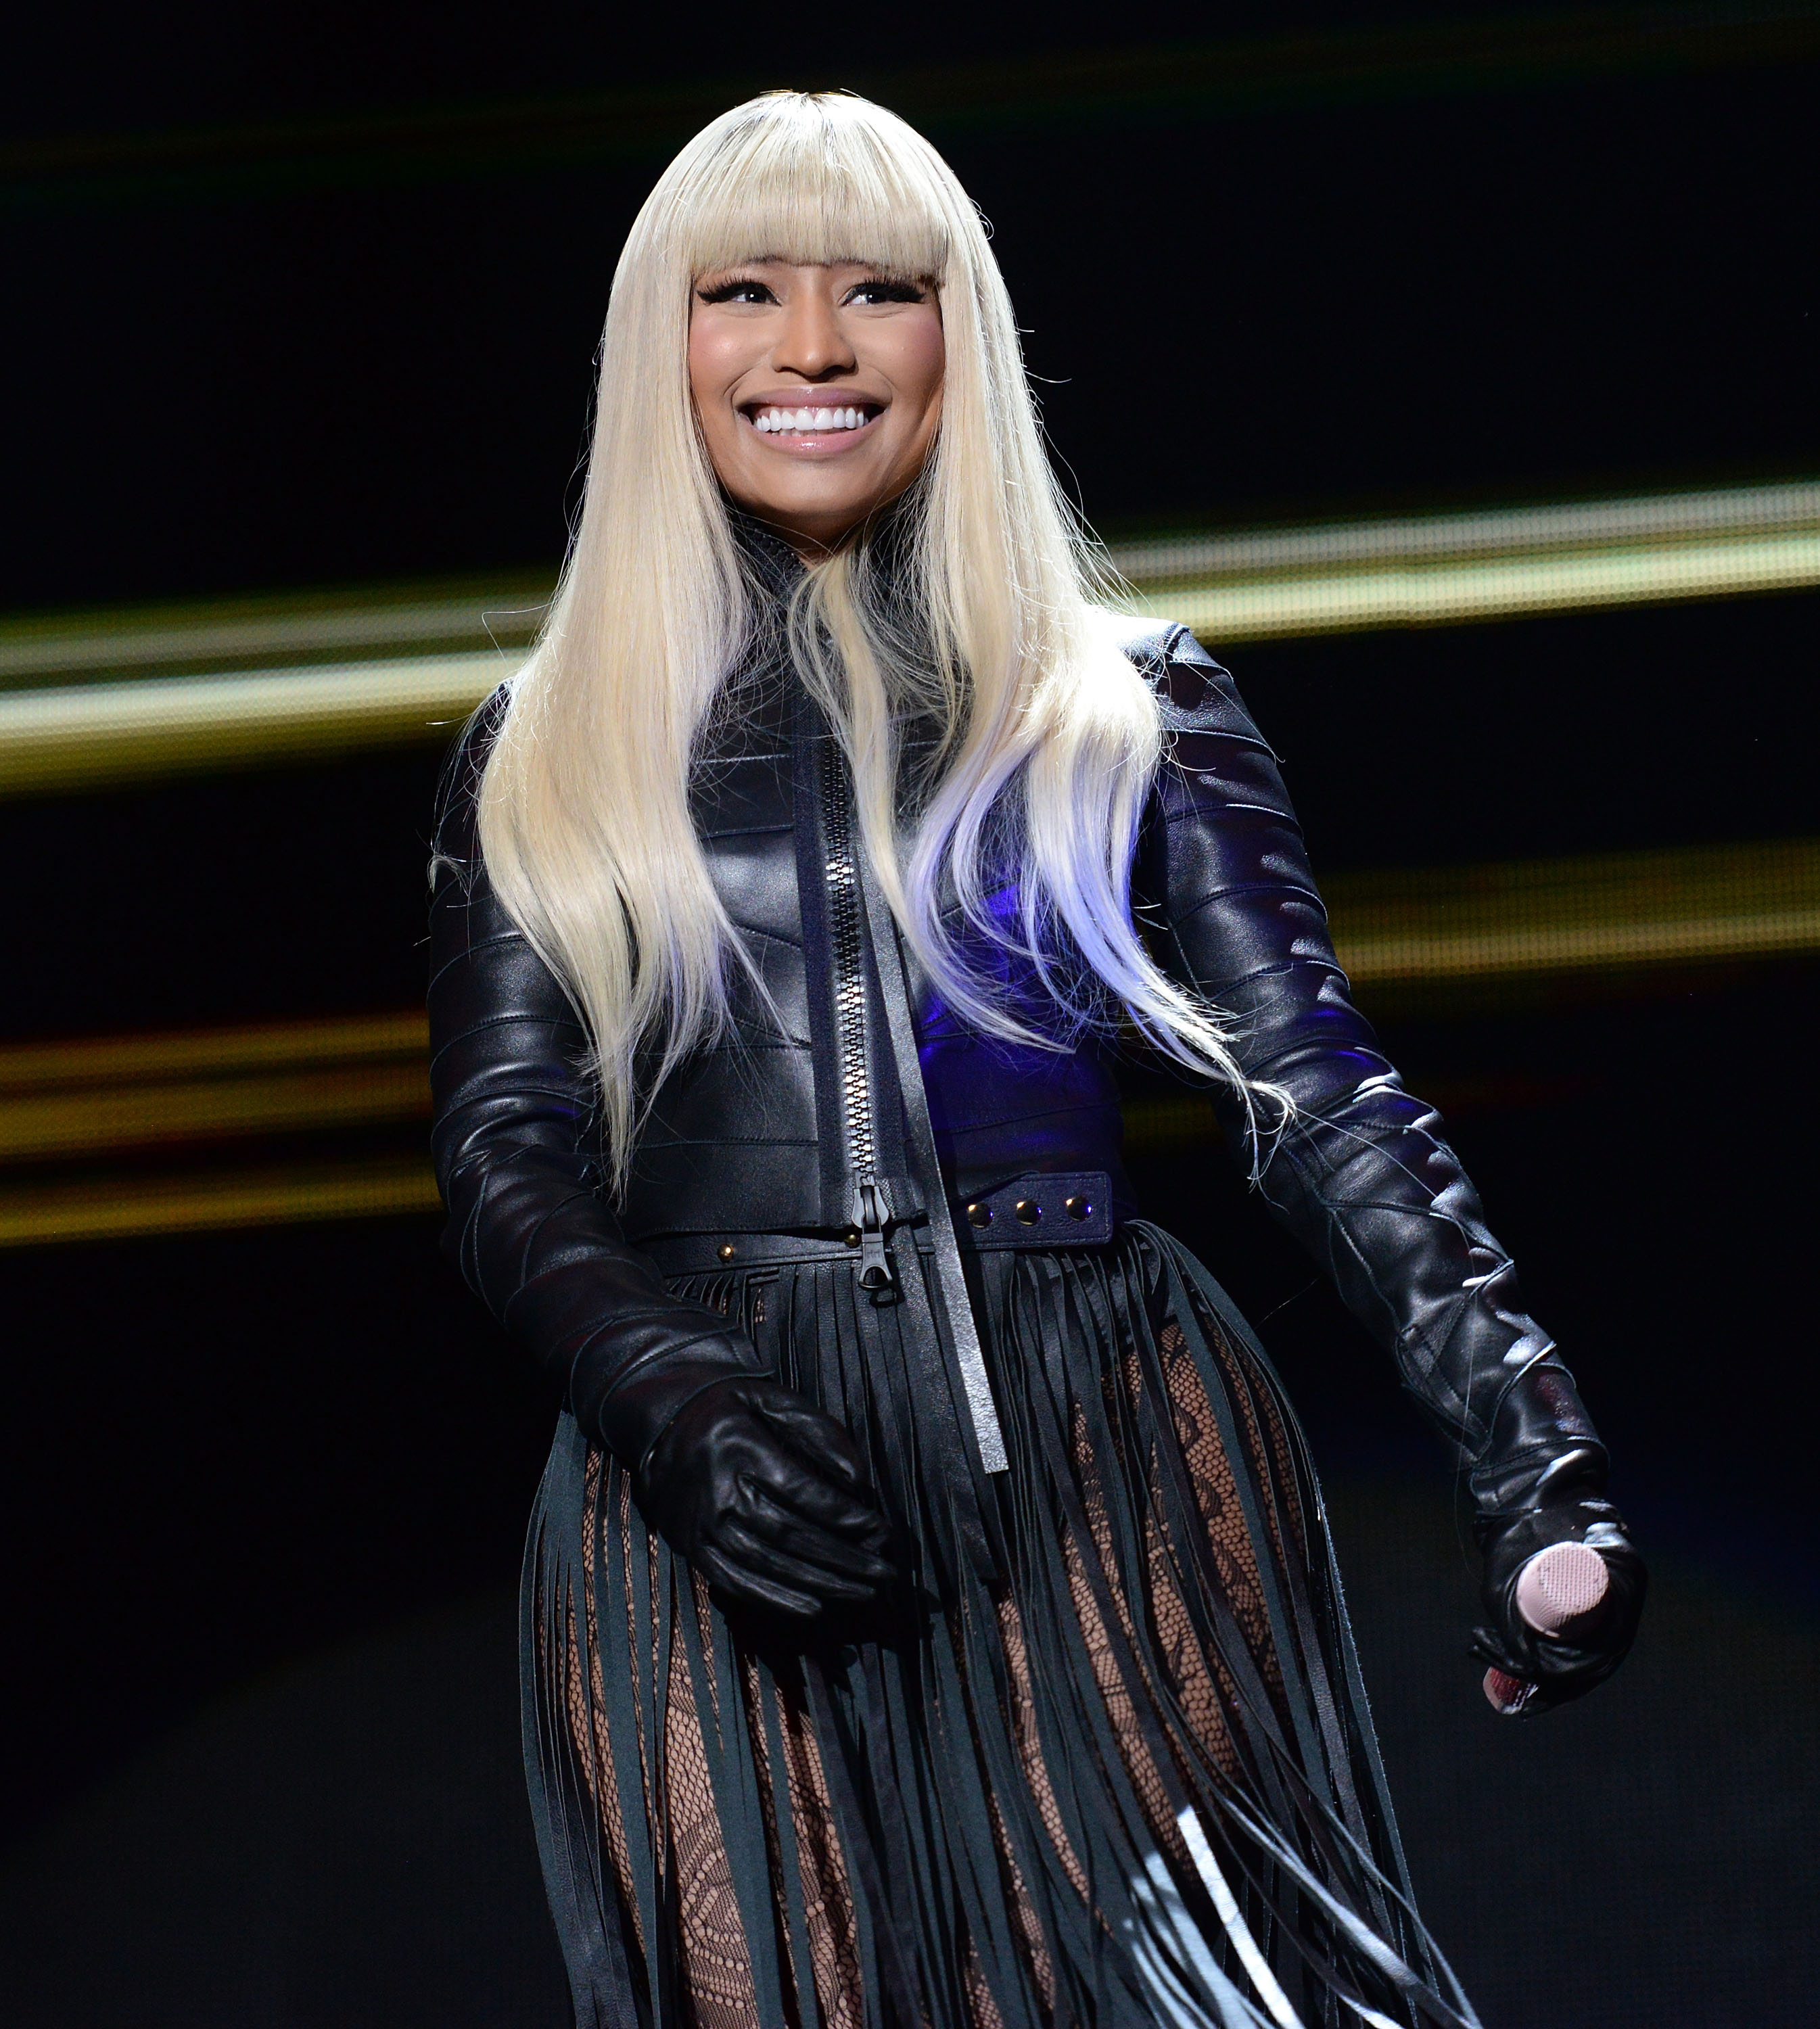 Nicki Minaj: Women should be 'unapologetic' in quest for equal pay